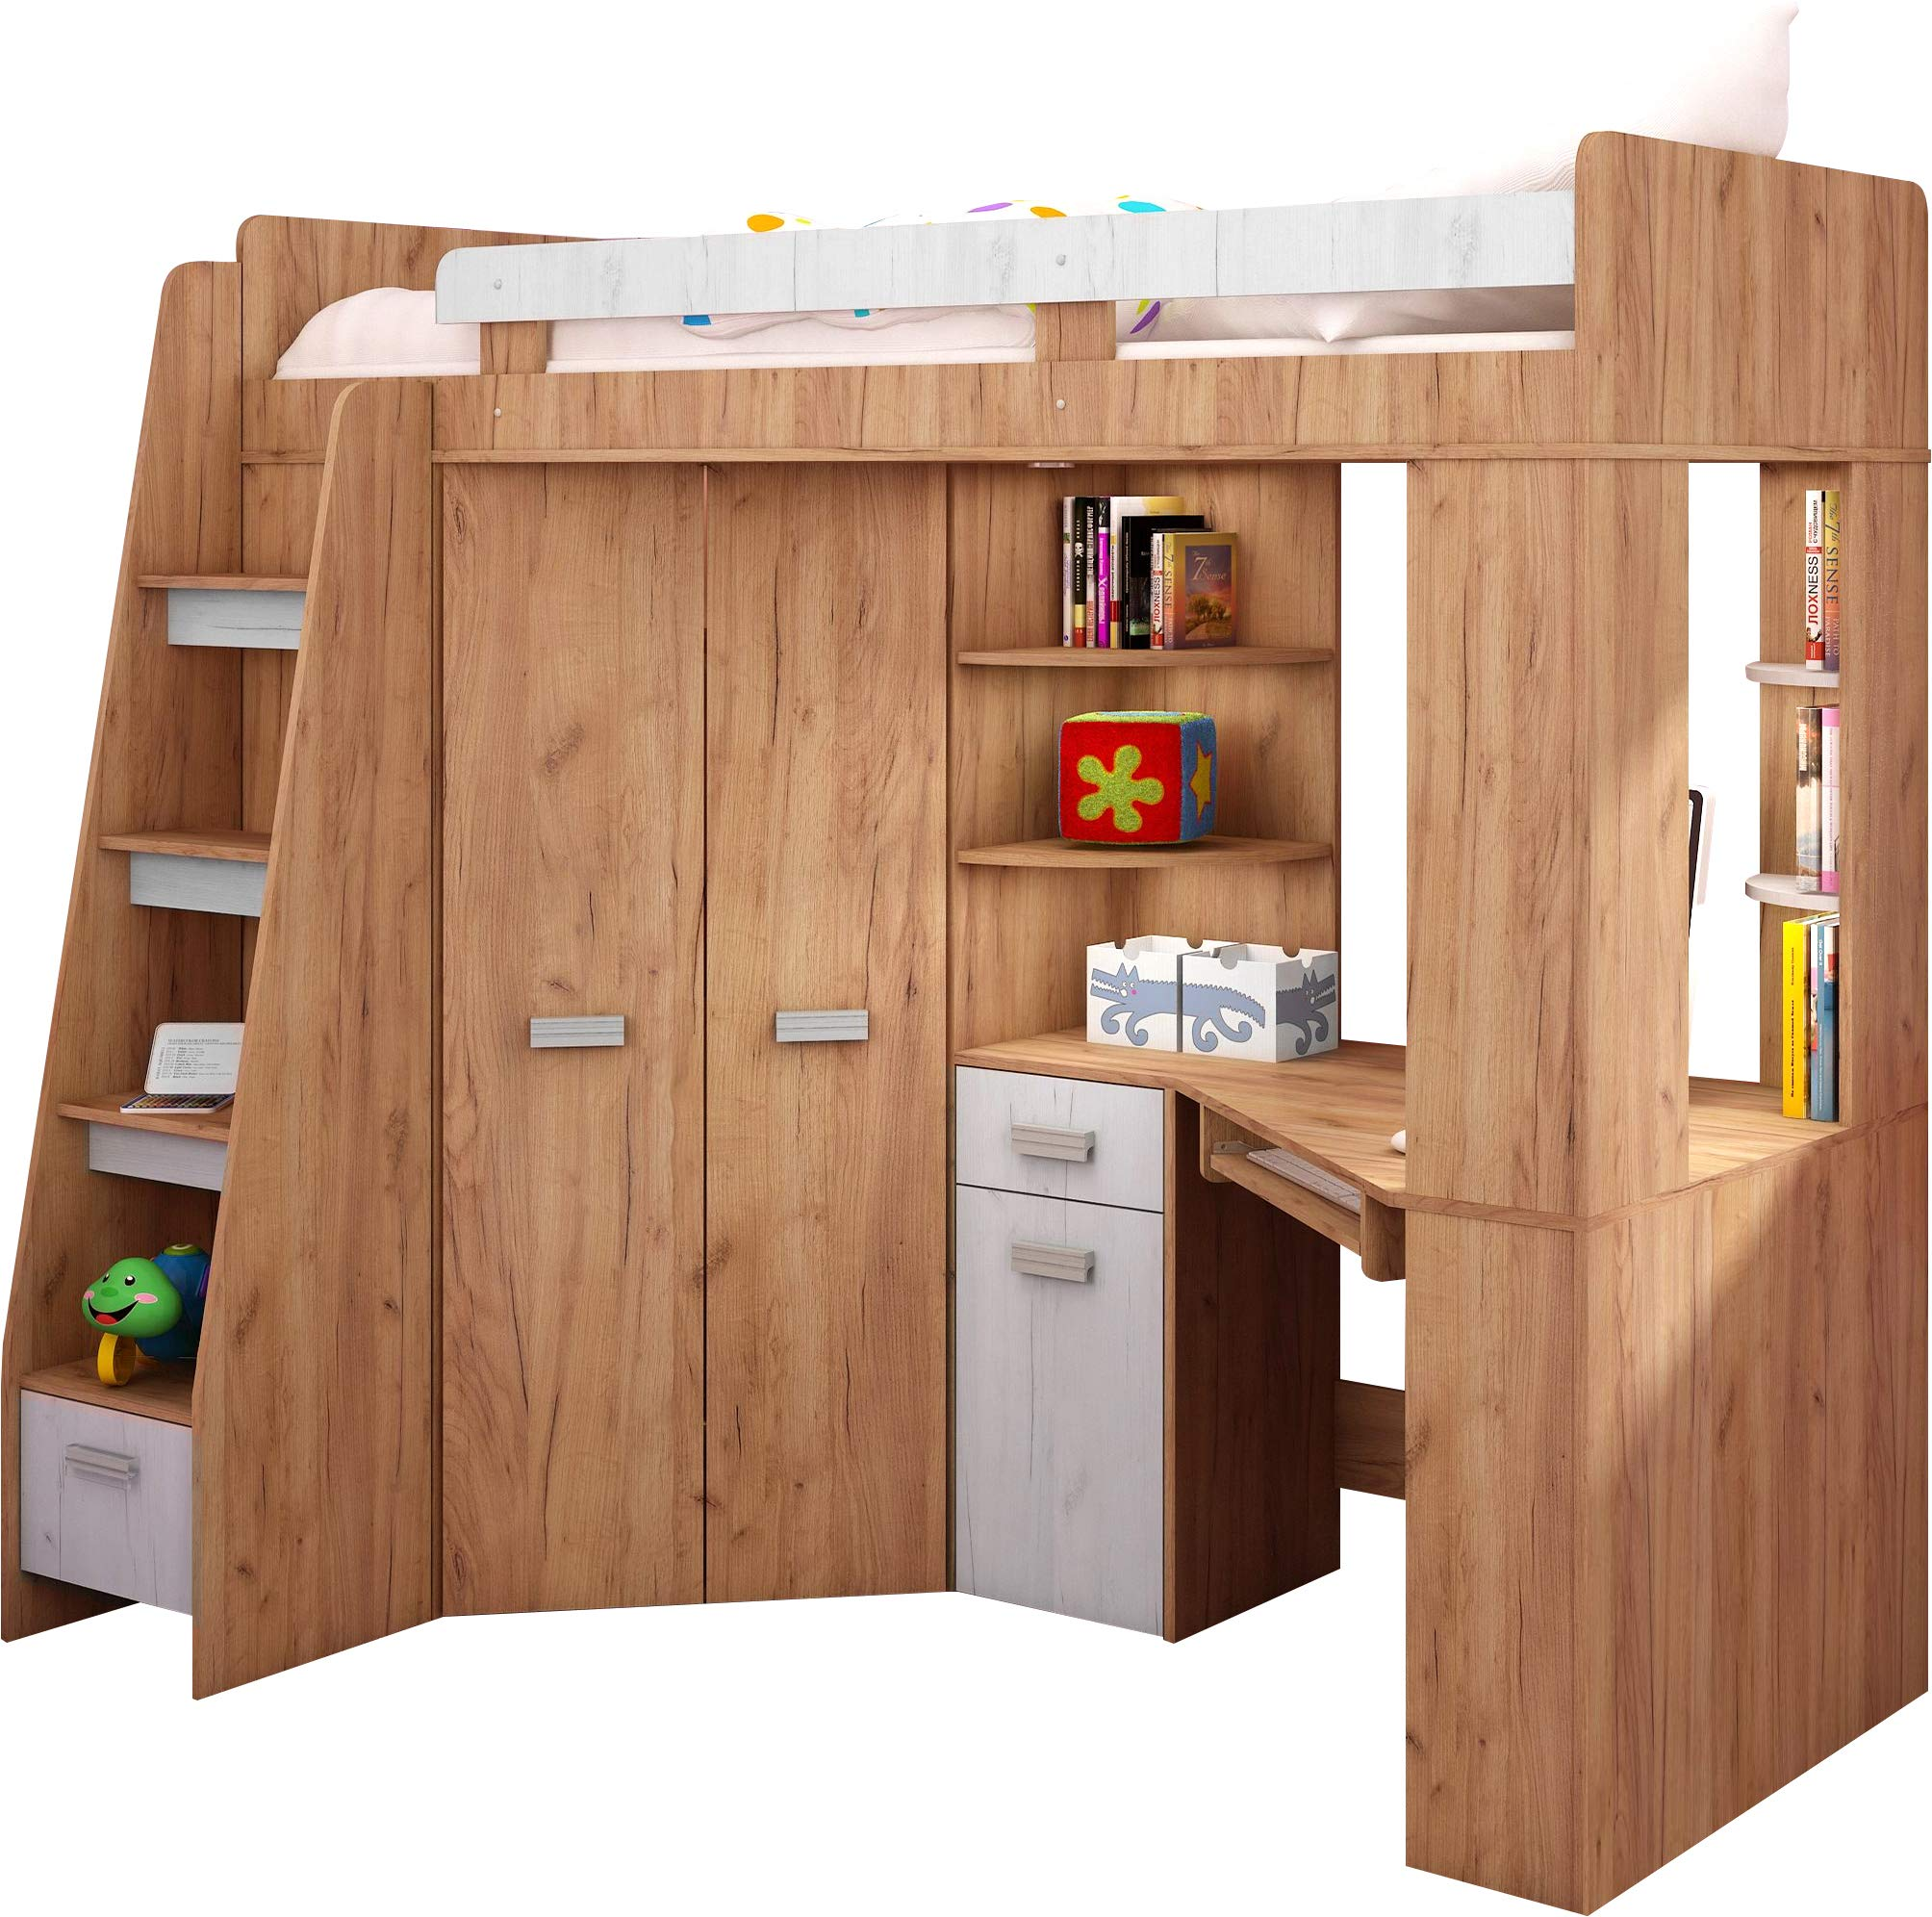 High Sleeper/Bunk Bed - ALL IN ONE Right or Left Hand-side Stairs - Kids/Children Furniture Set. Bed, Wardrobe, Shelves, Desk. (Craft-Gold/Craft-White - Left Hand-side Stairs.)